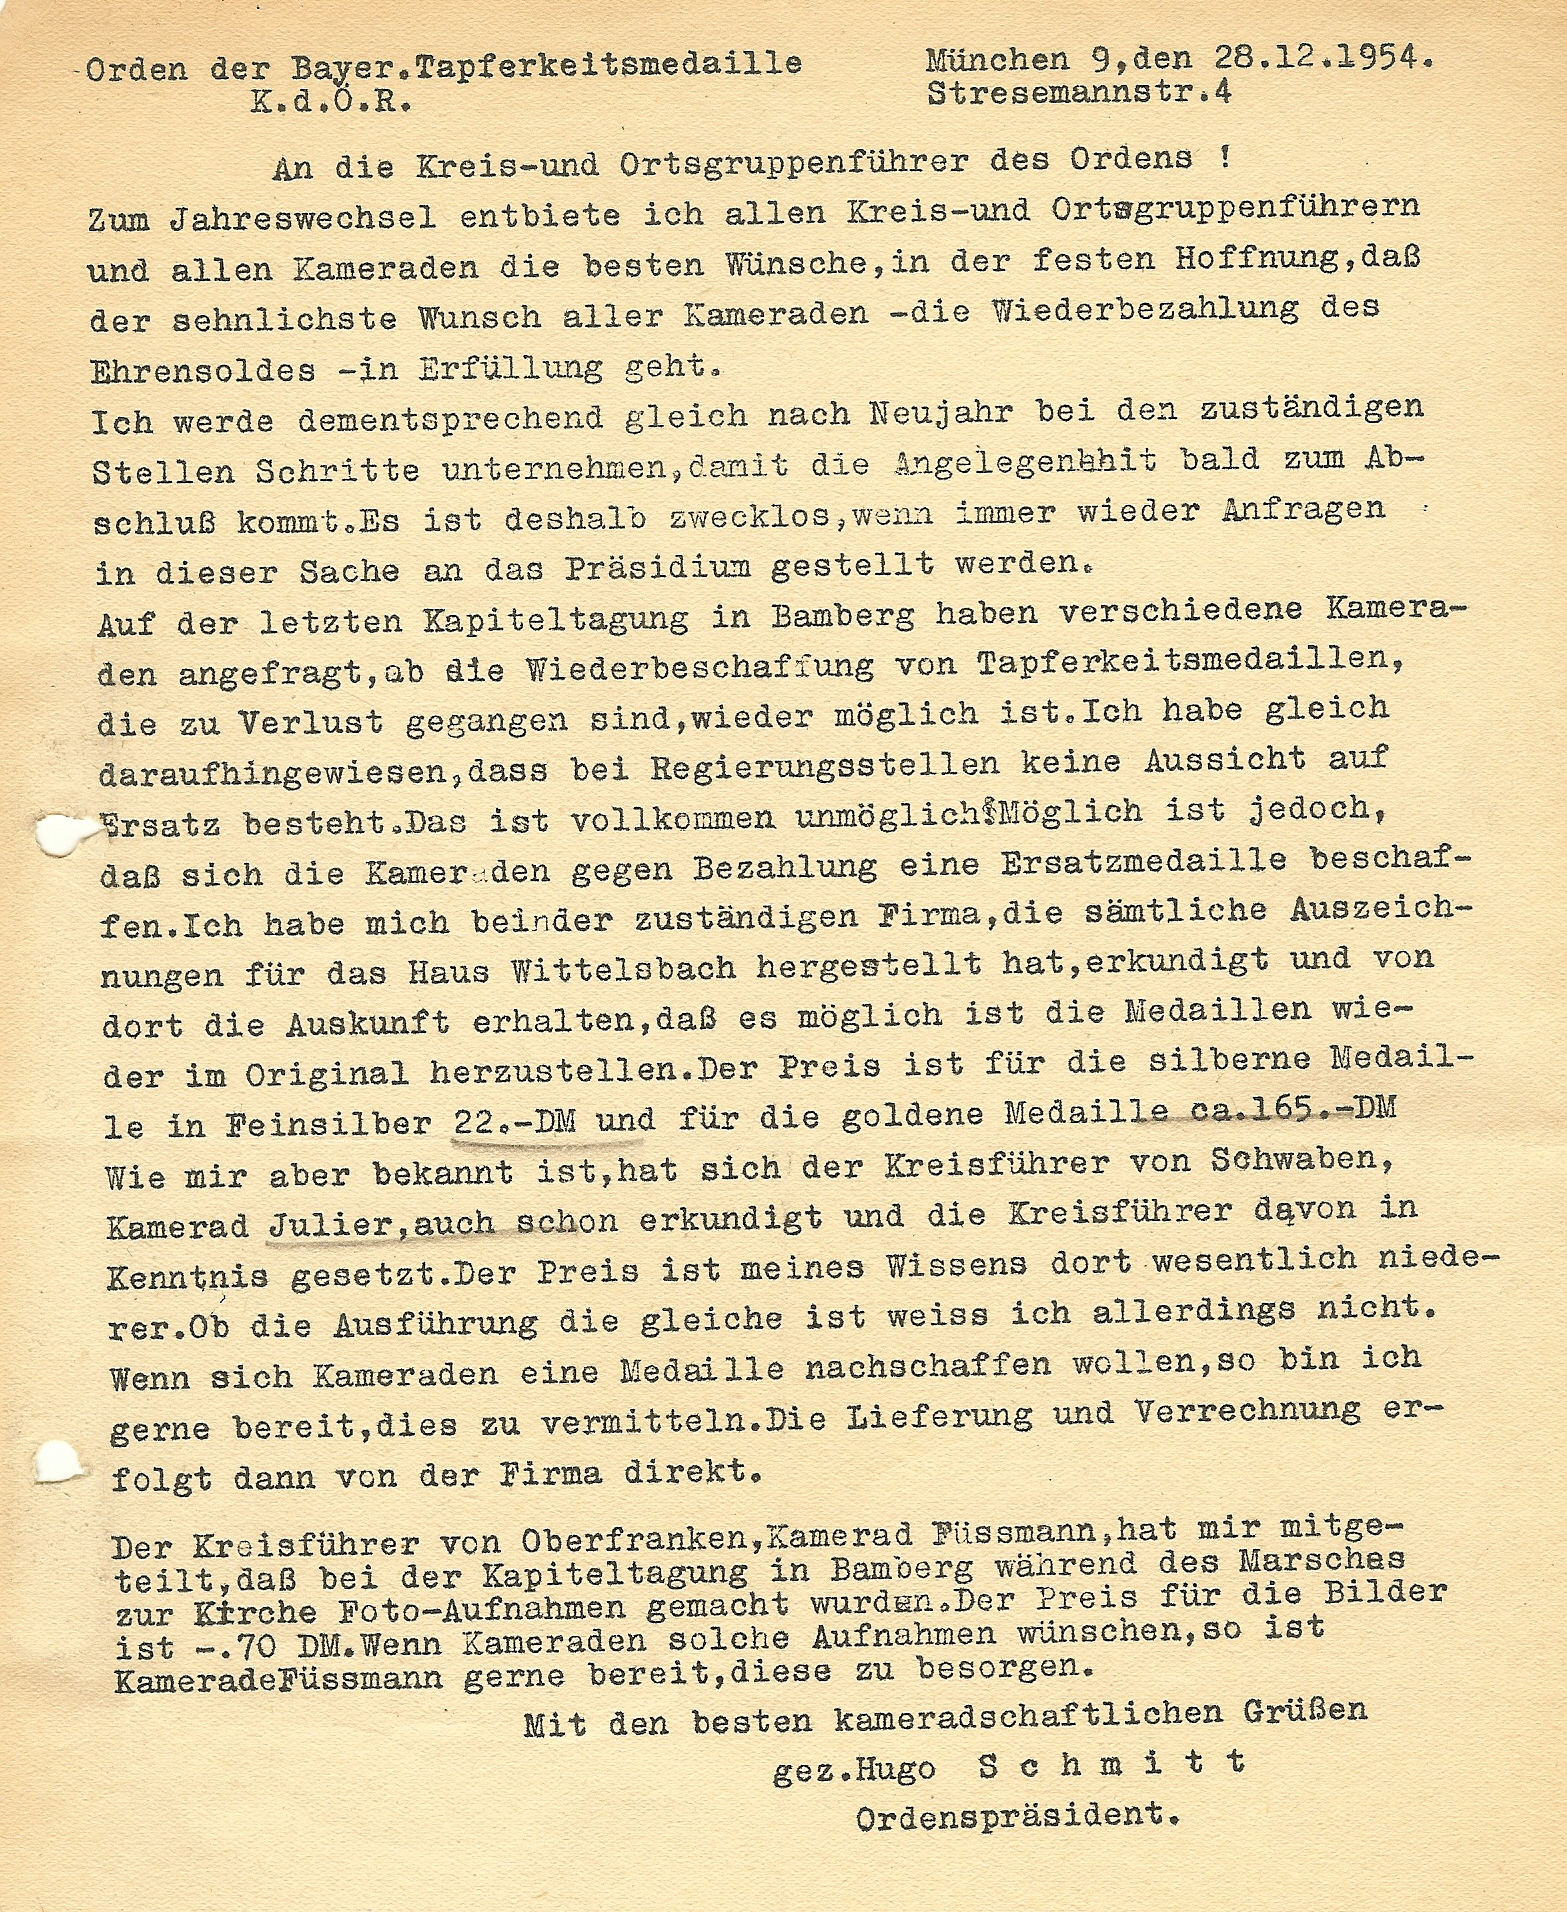 Figure 9-Letter discussing the availability of replacement medals for Orden der Bayerischen Tapferkeitsmedaille members. Image from author's archive.